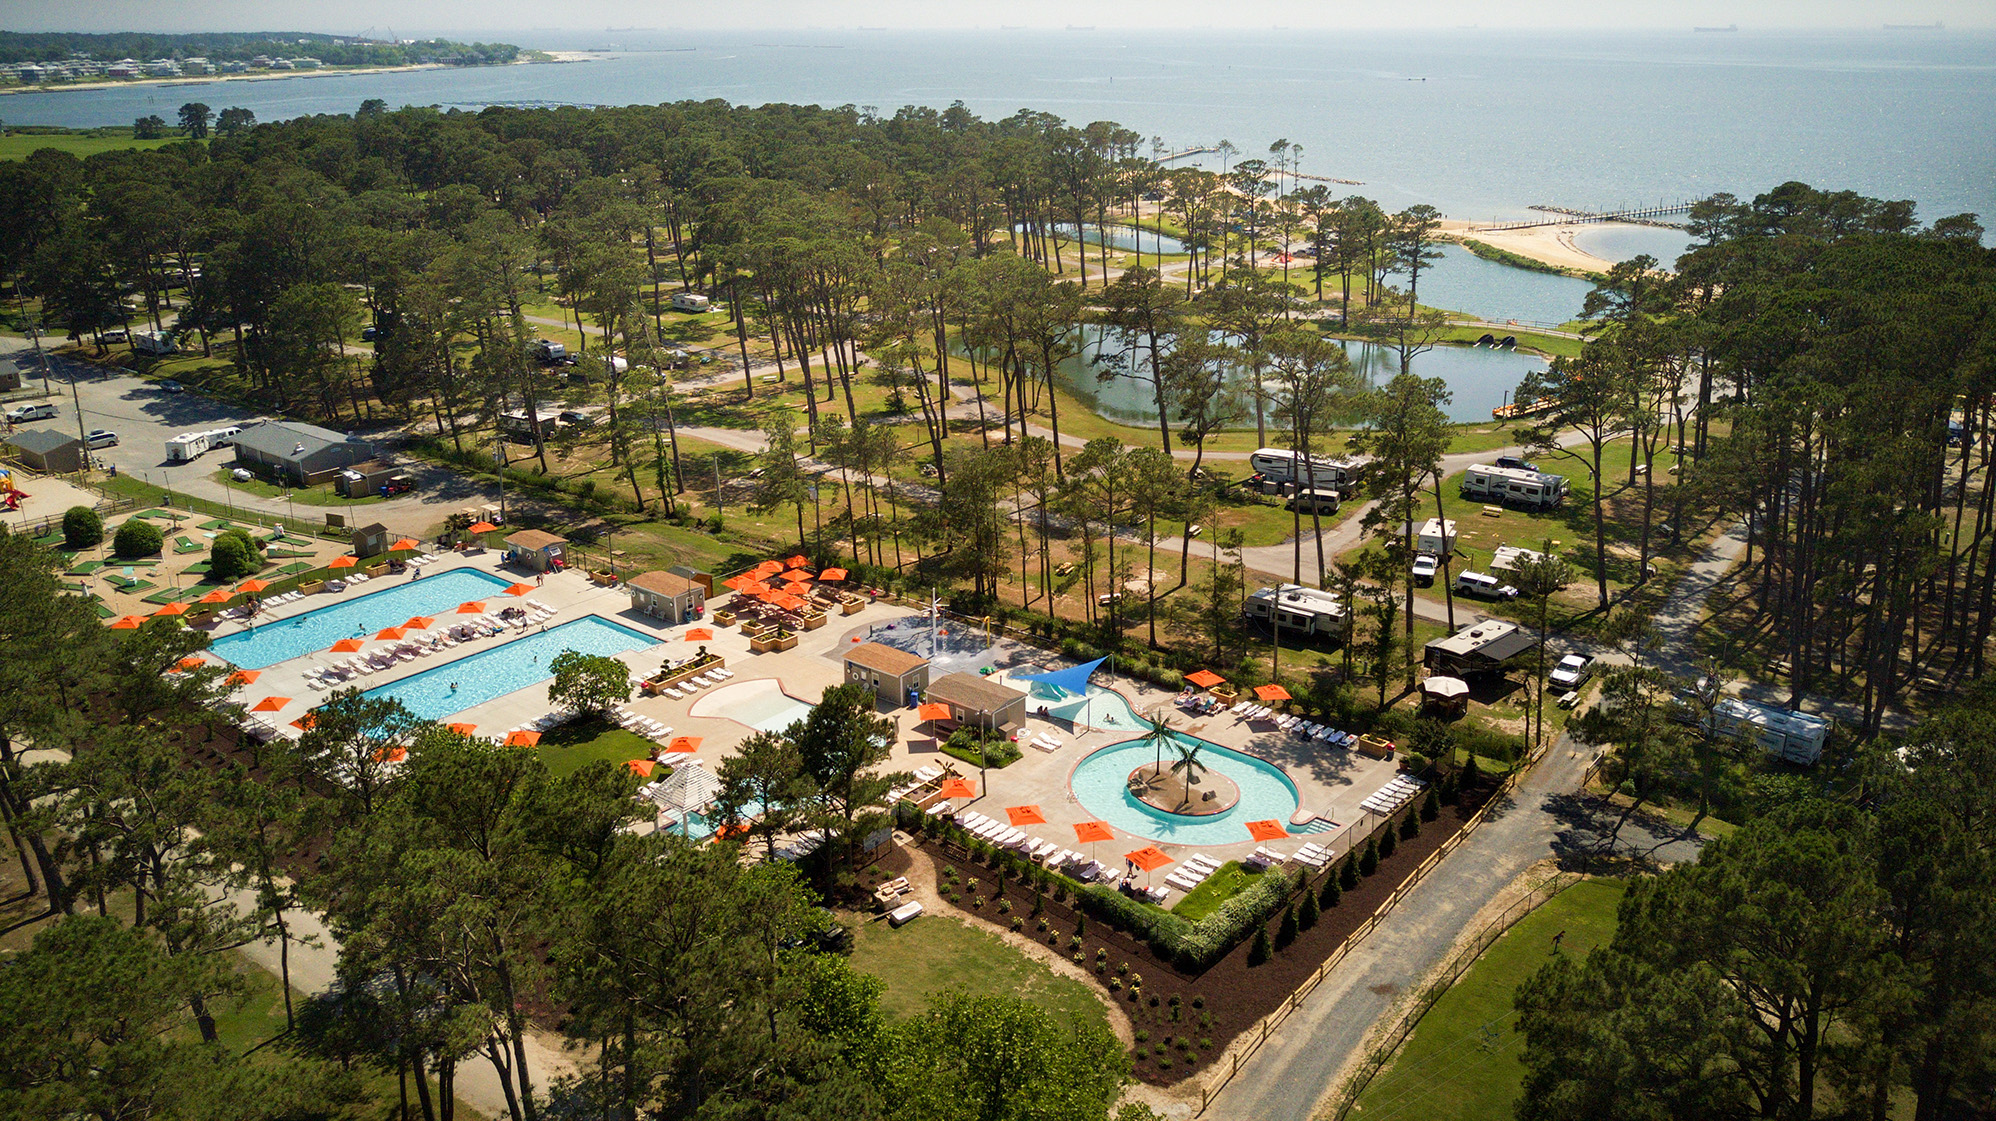 aerial photo of cherrystone family camping resort